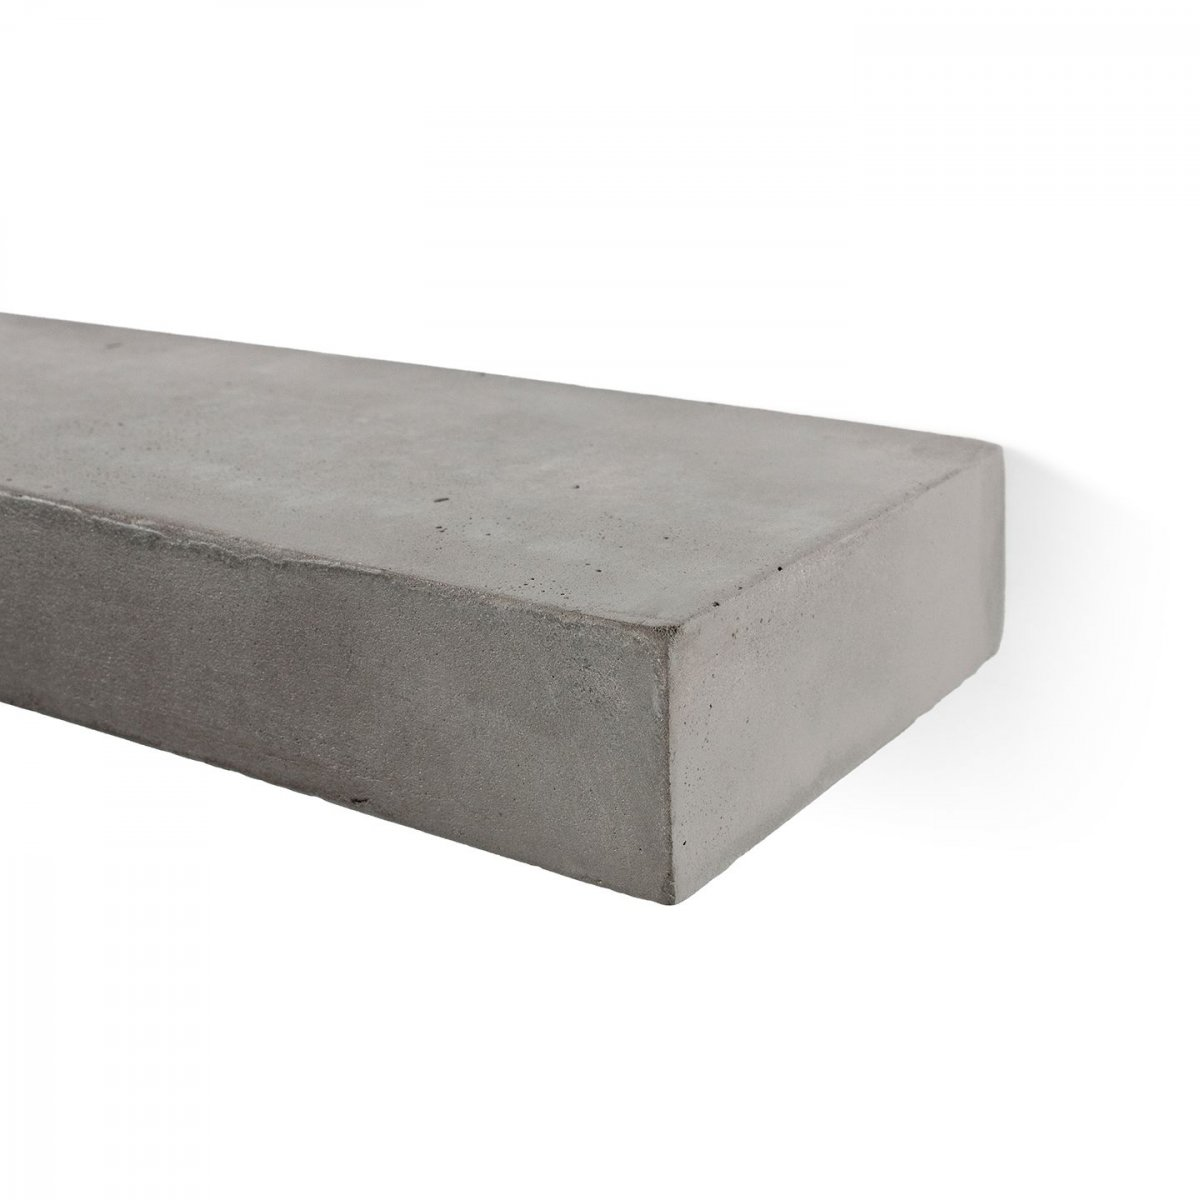 Sliced S Concrete Shelf, detail.